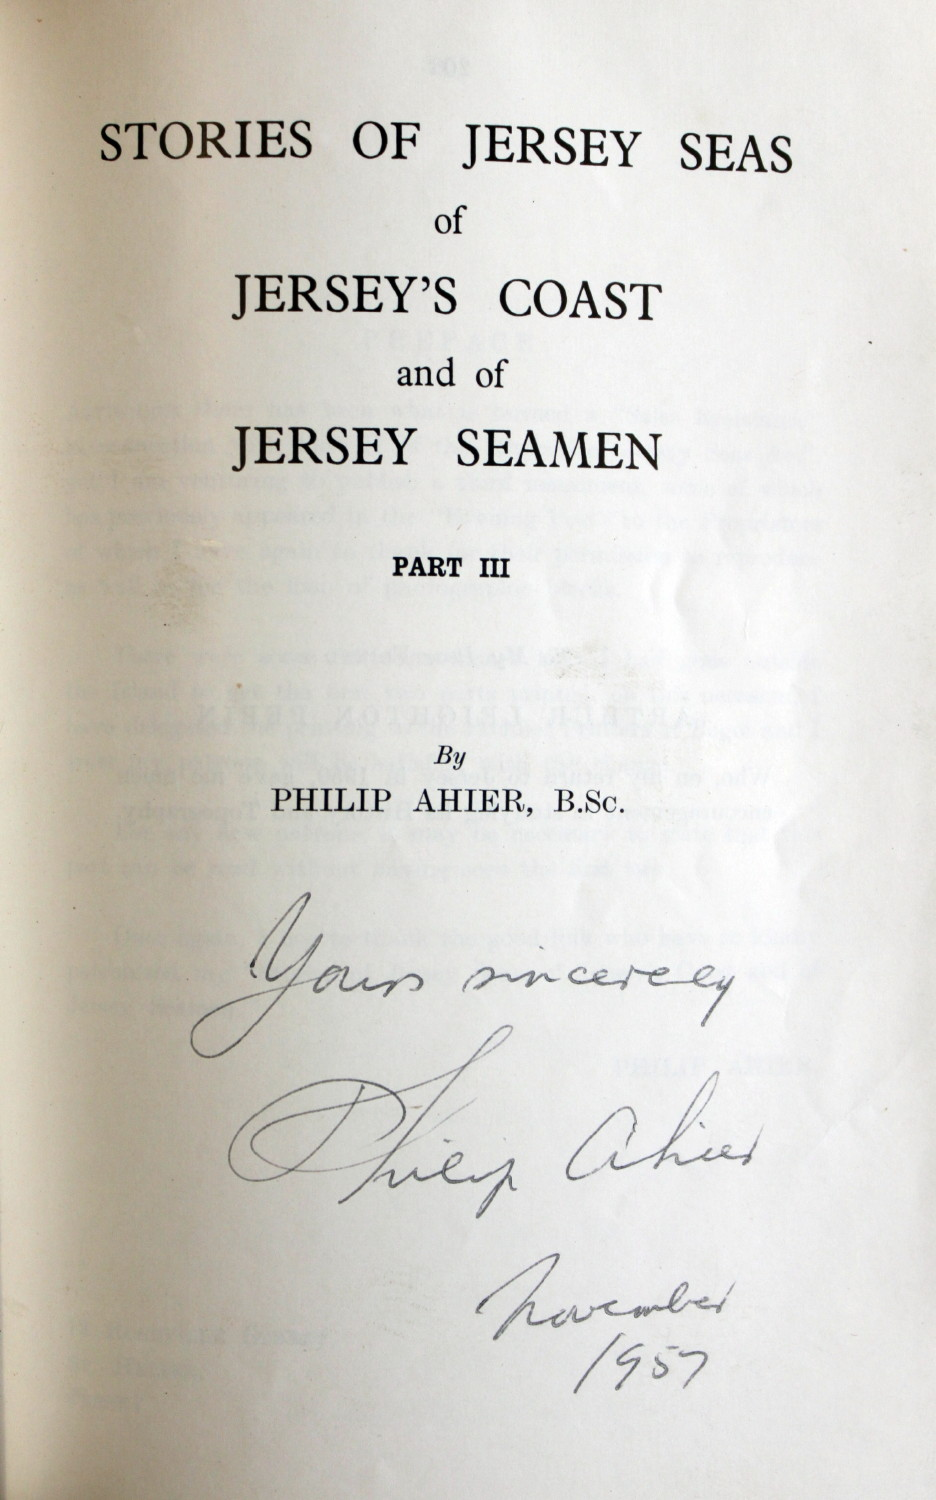 Image for Stories of Jersey Seas of Jersey's Coast and of Jersey Fishermen. [Part I] with Part II and Part III [complete]